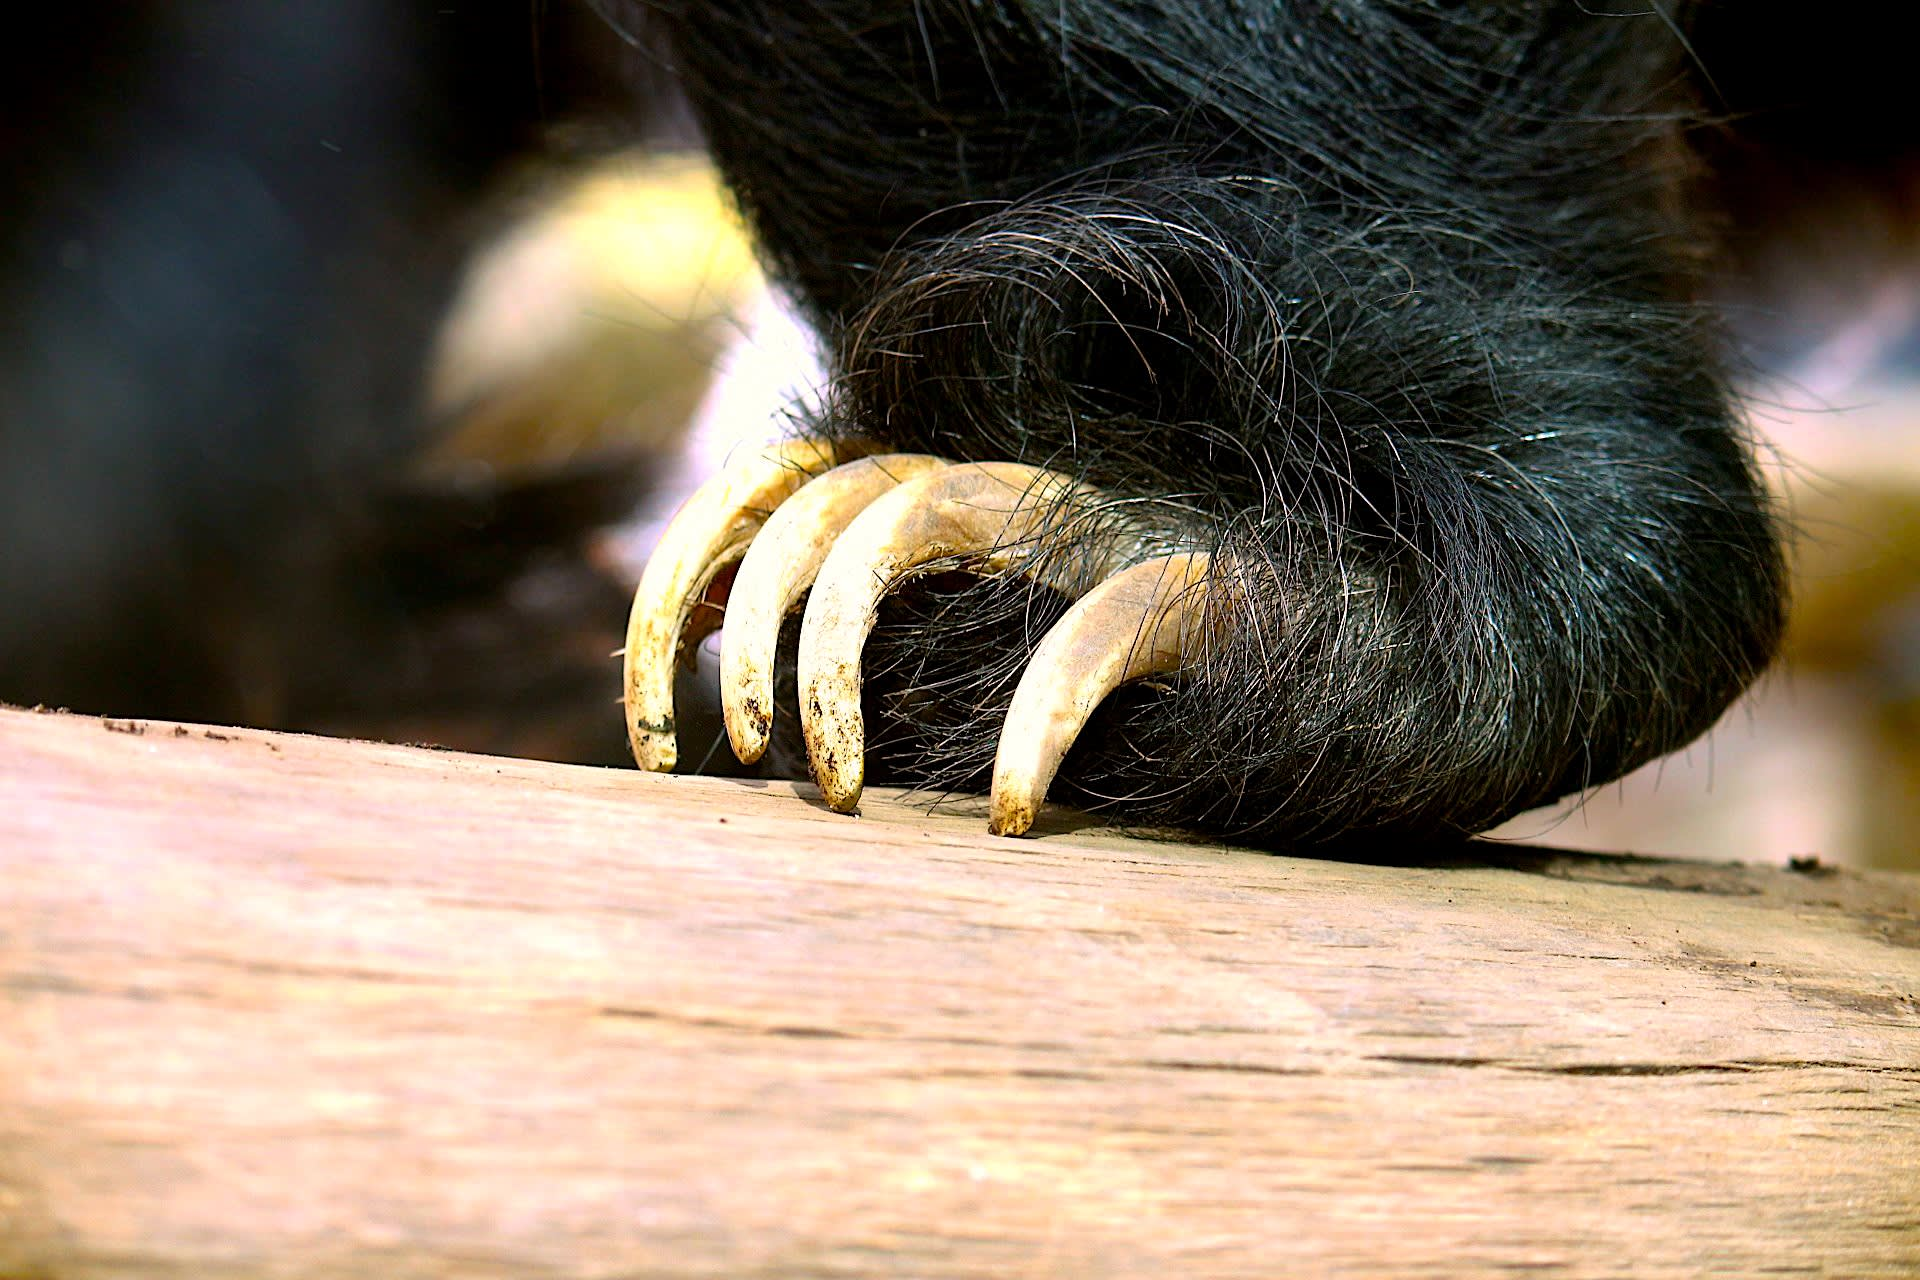 Close up of a sloth bear's claws